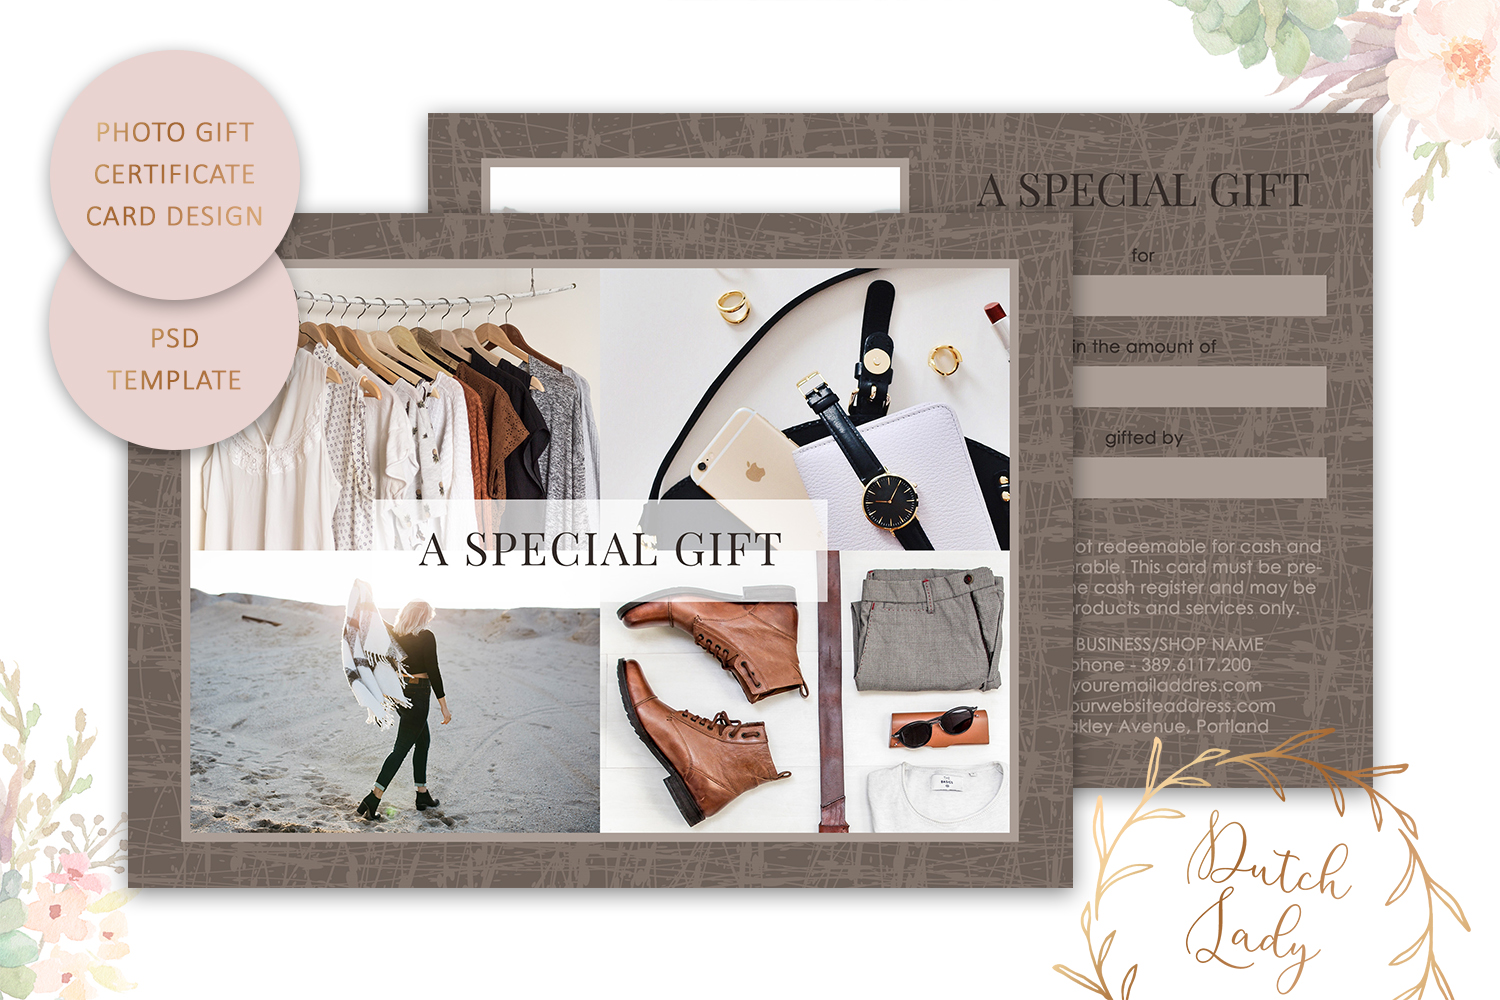 Photo Gift Card Template for Adobe Photoshop - #29 example image 1